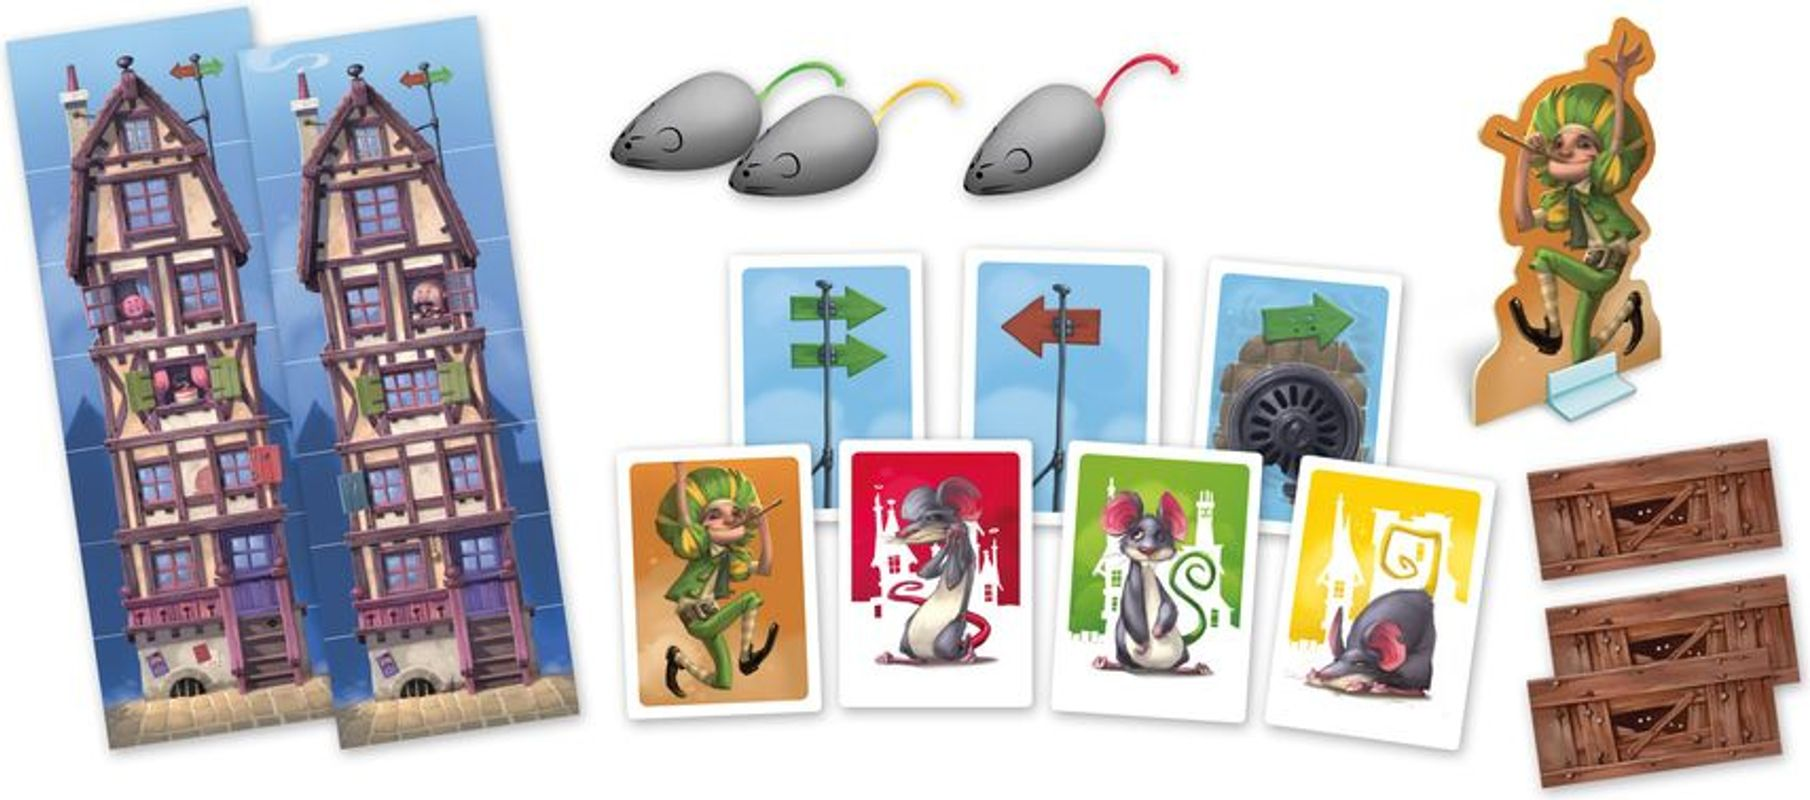 Tales & Games: The Pied Piper components